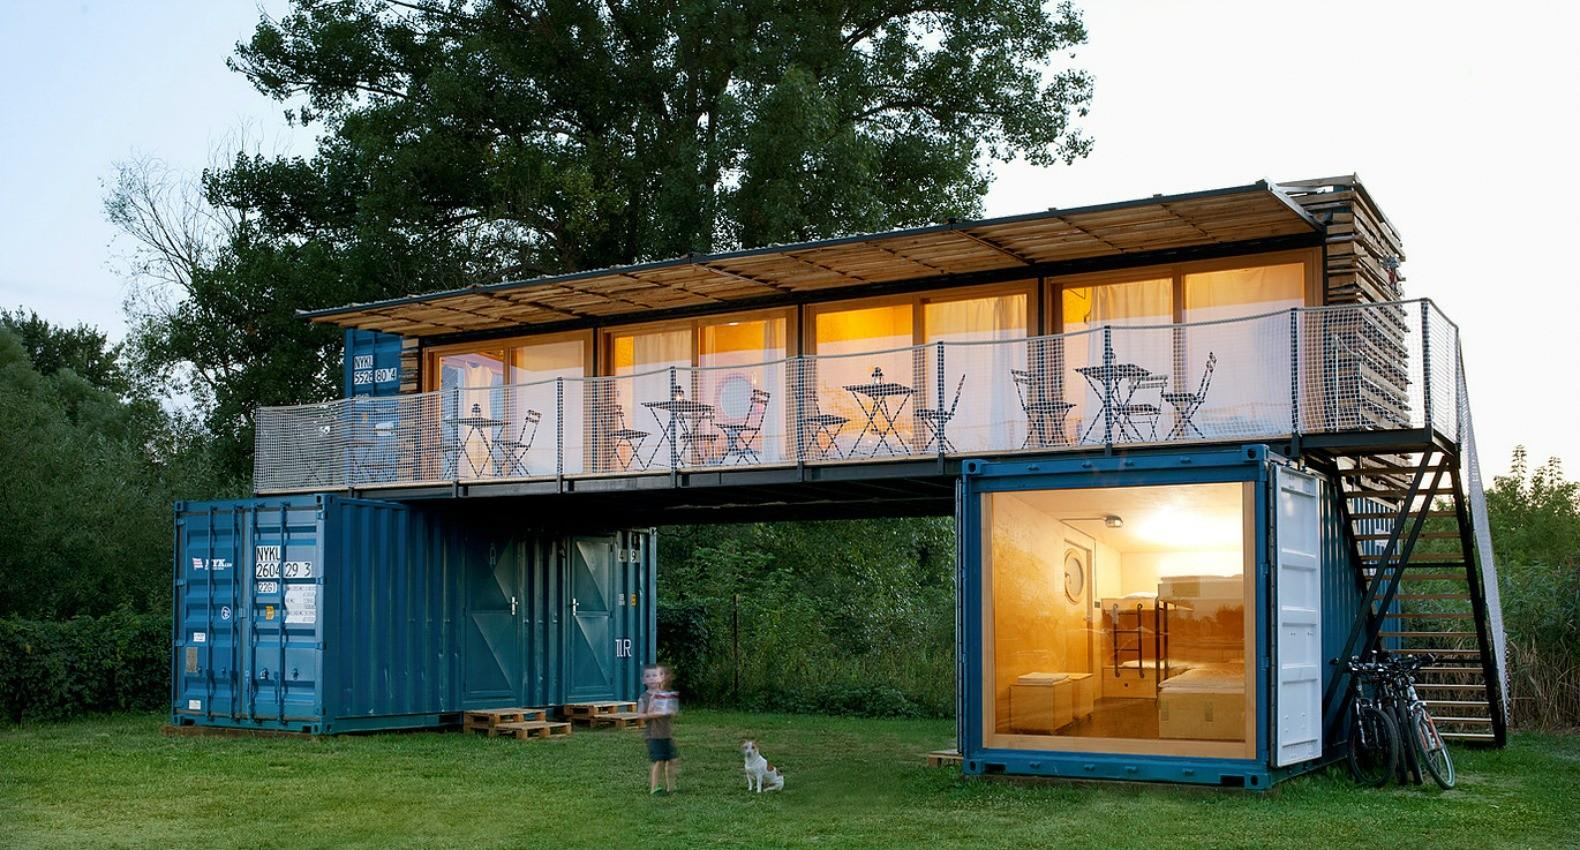 Shipping Container Hotel Inhabitat Green Design